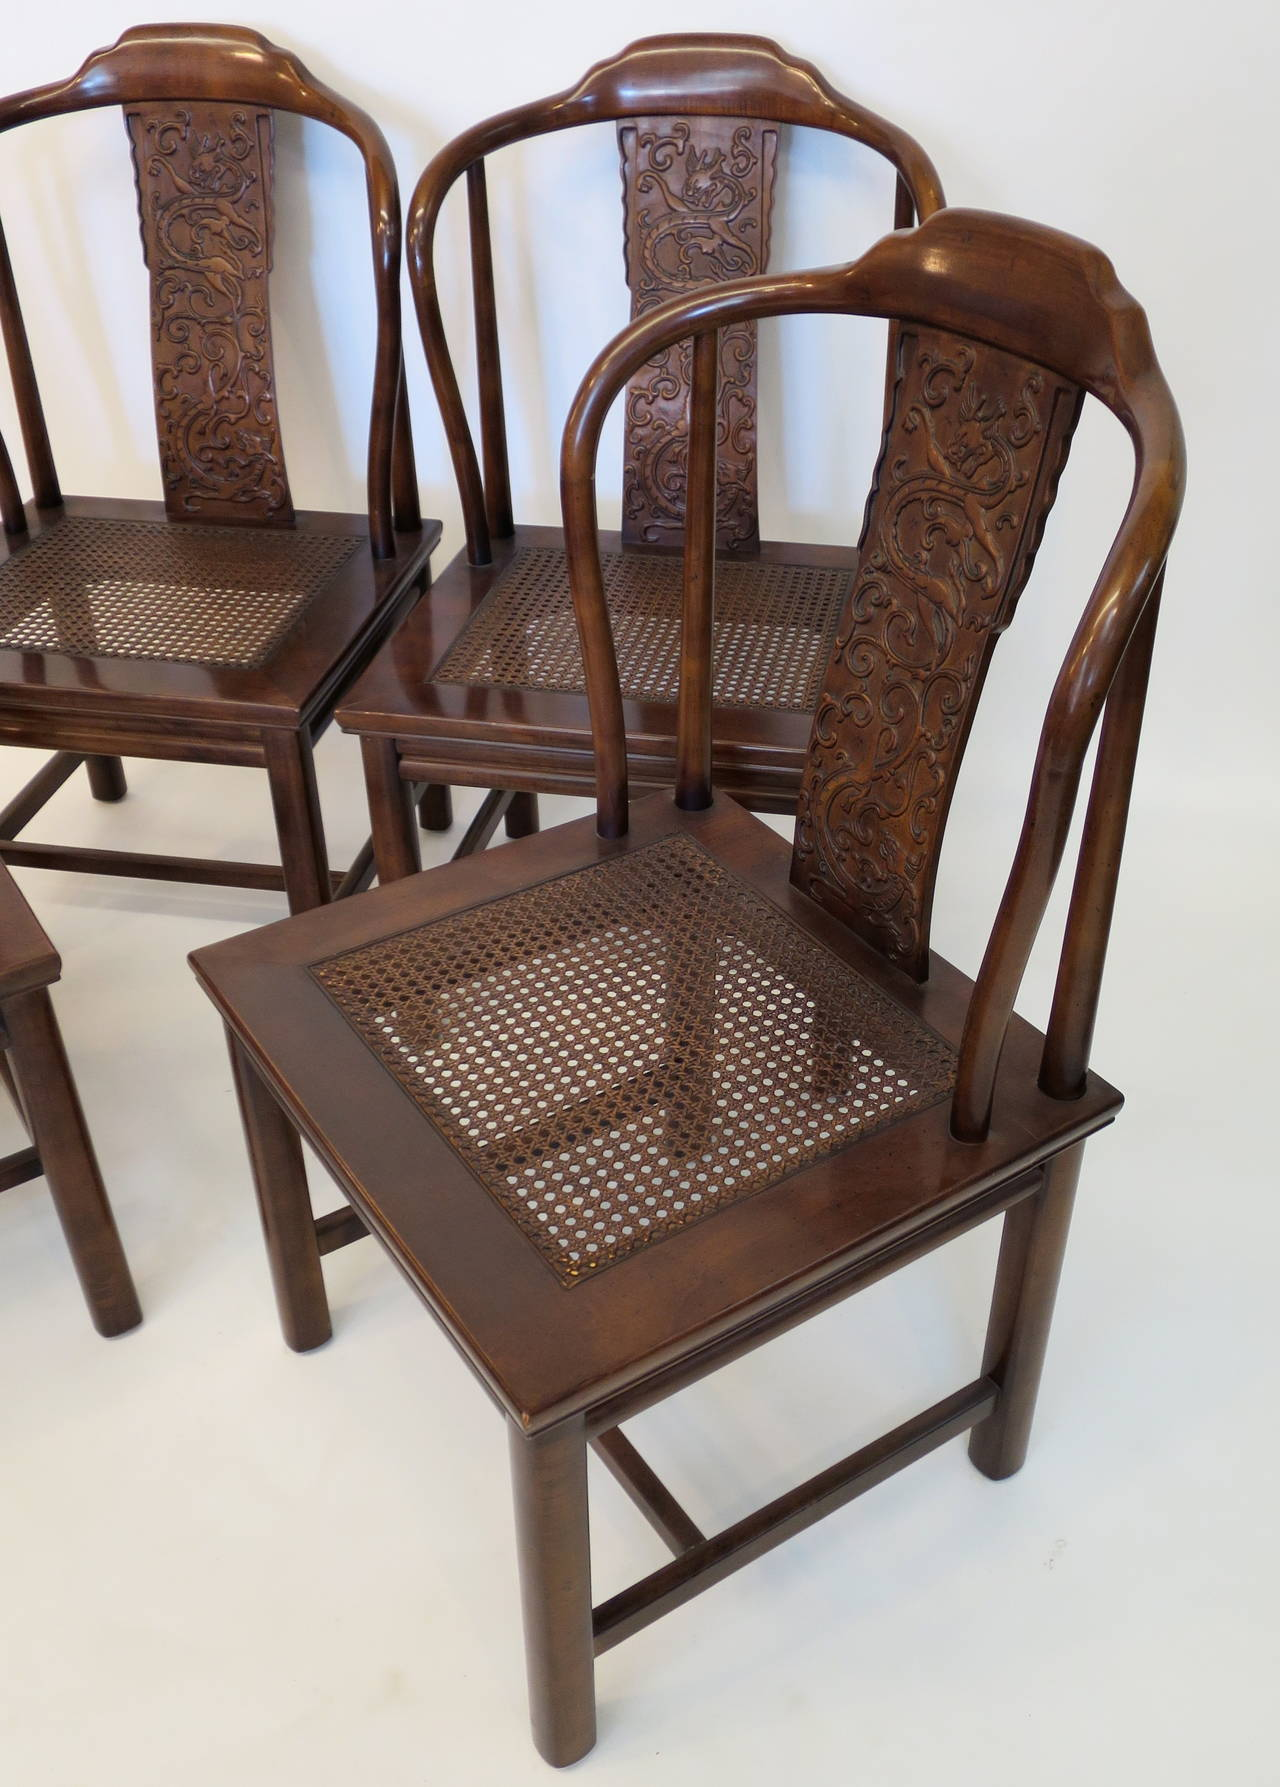 henredon asian dining chairs patio chair with ottoman underneath set of four inspired by furniture